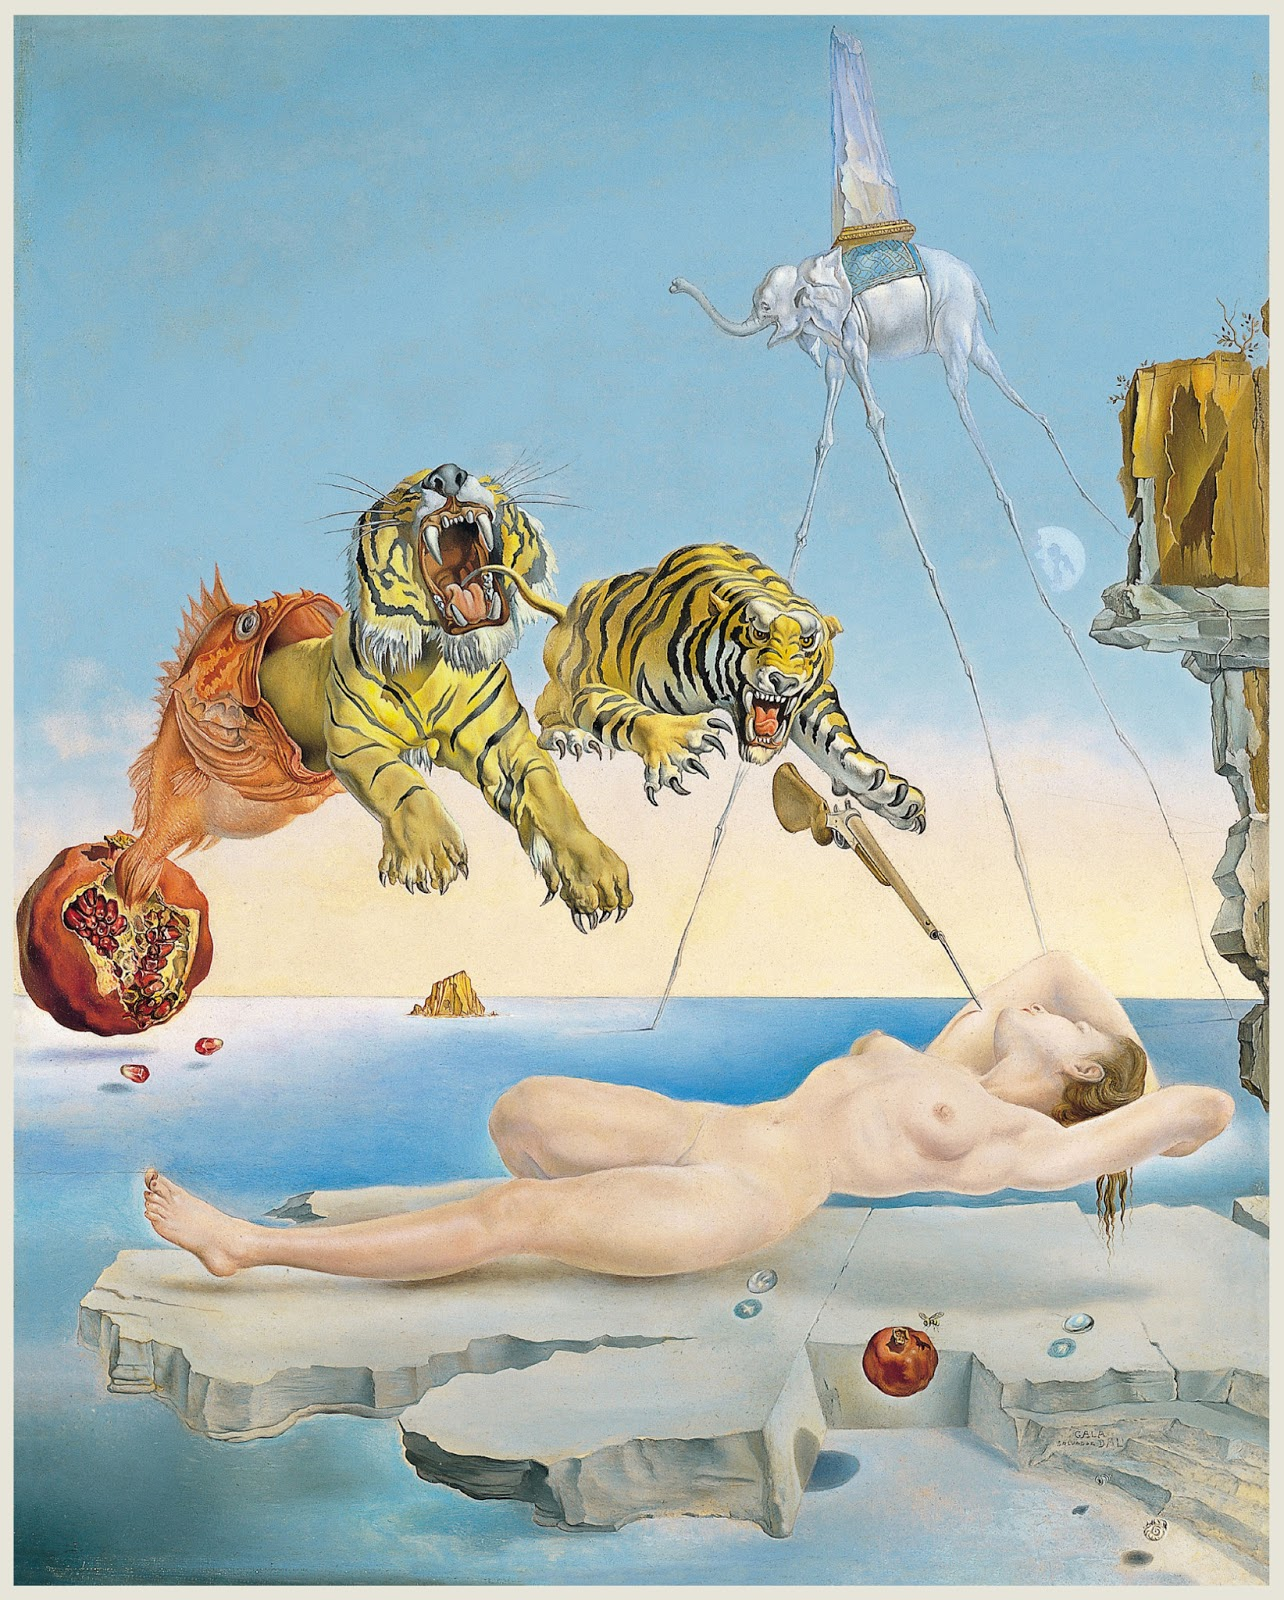 http://4.bp.blogspot.com/-0o52RBWrLgk/UP8RyP7RKDI/AAAAAAAAAMs/L9InRsohWxA/s1600/Salvador-Dali%CC%81-Dream-caused-by-the-Flight-of-a-Bee-around-a-Pomegranate-a-Second-before-Waking-up-1944.jpg